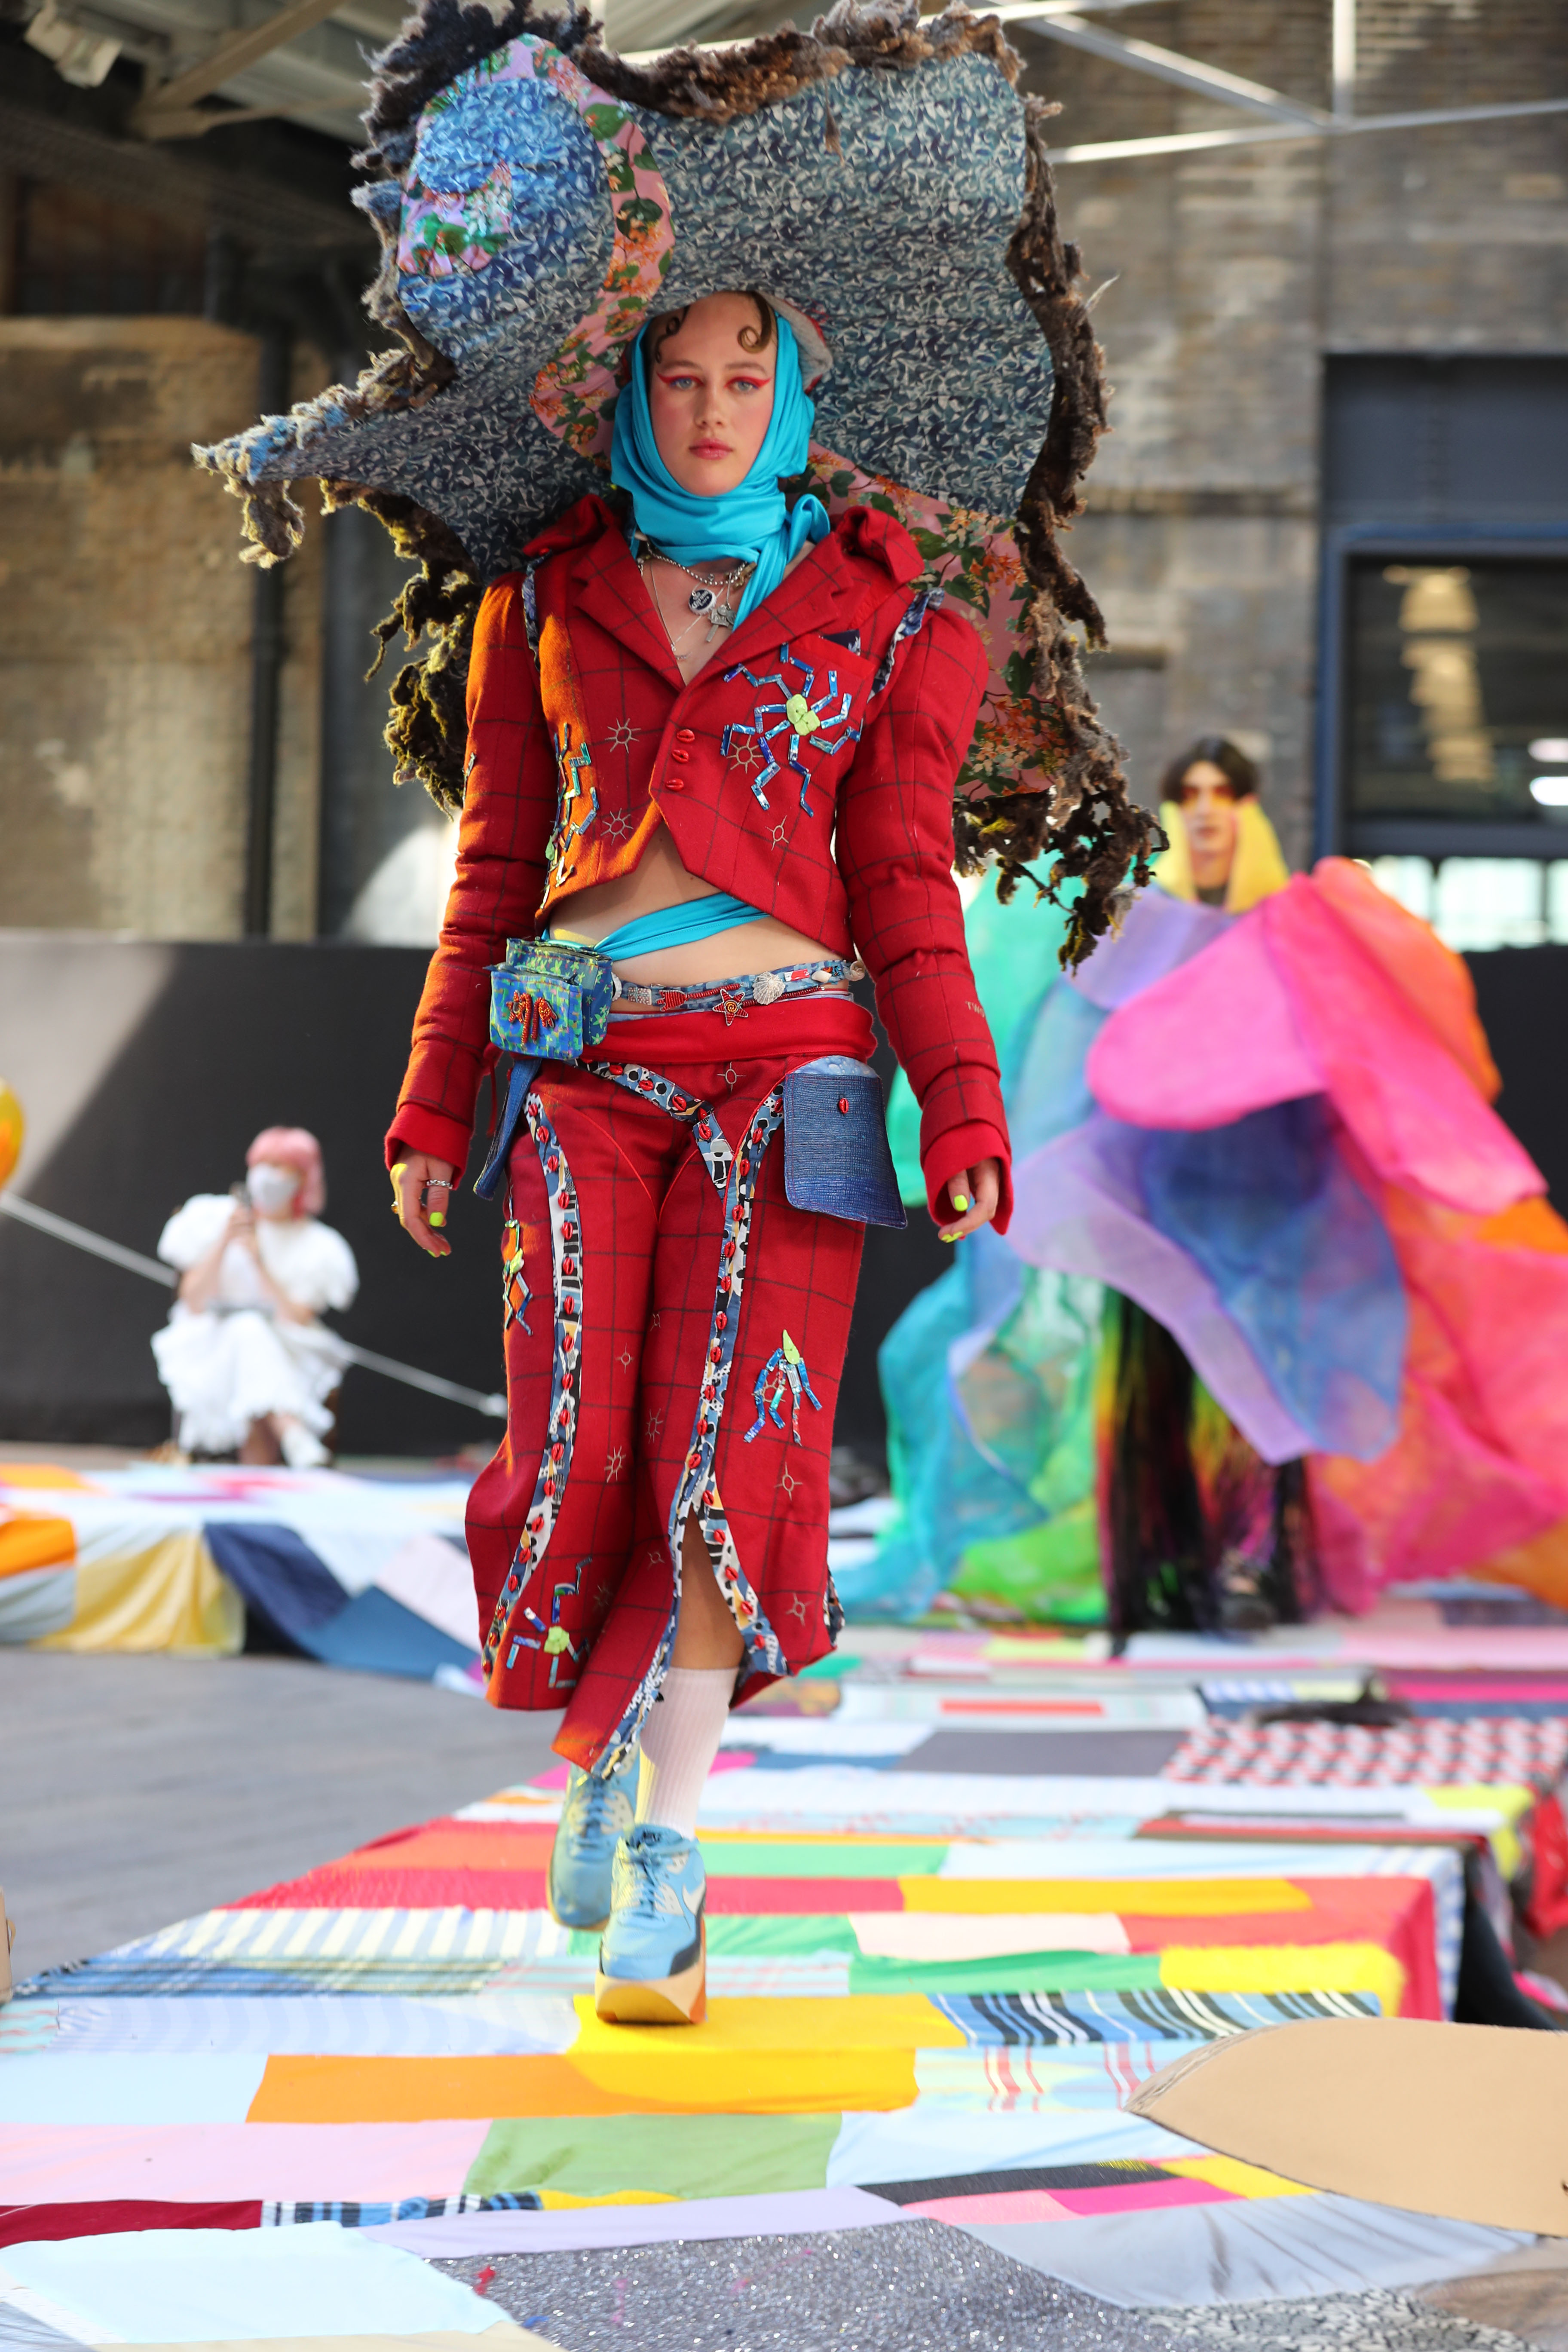 A look from the Central Saint Martins BA Fashion Show 2021.